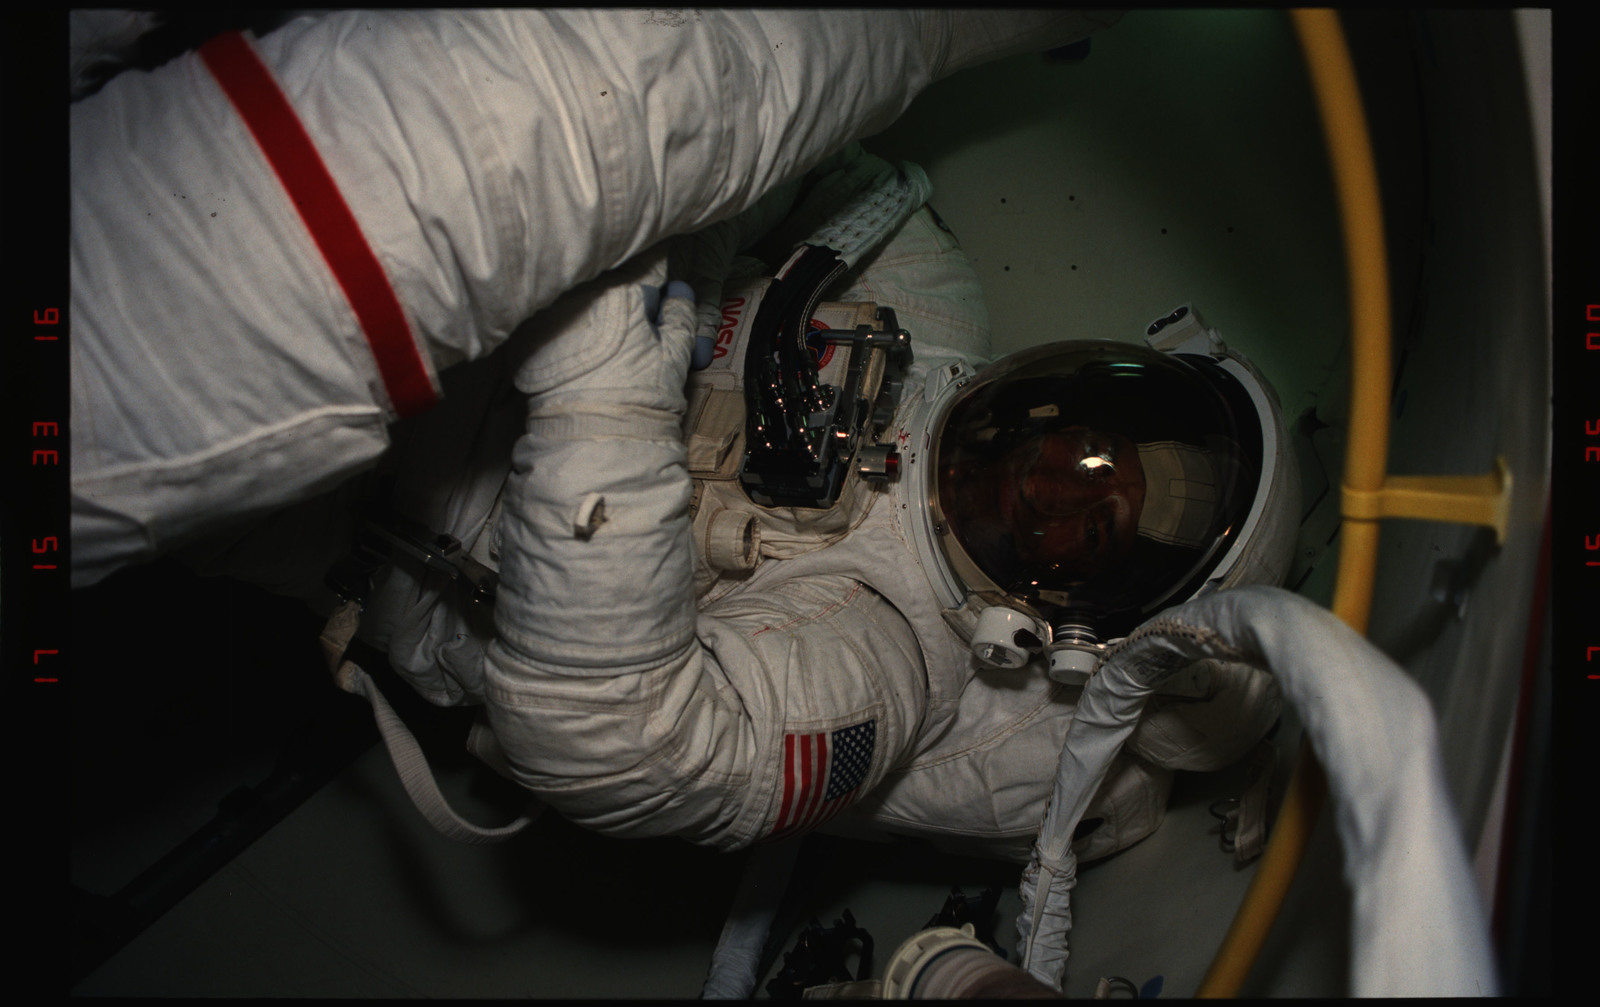 STS054-06-013 - STS-054 - EVA Crewmembers emerging from the air lock into the middeck.